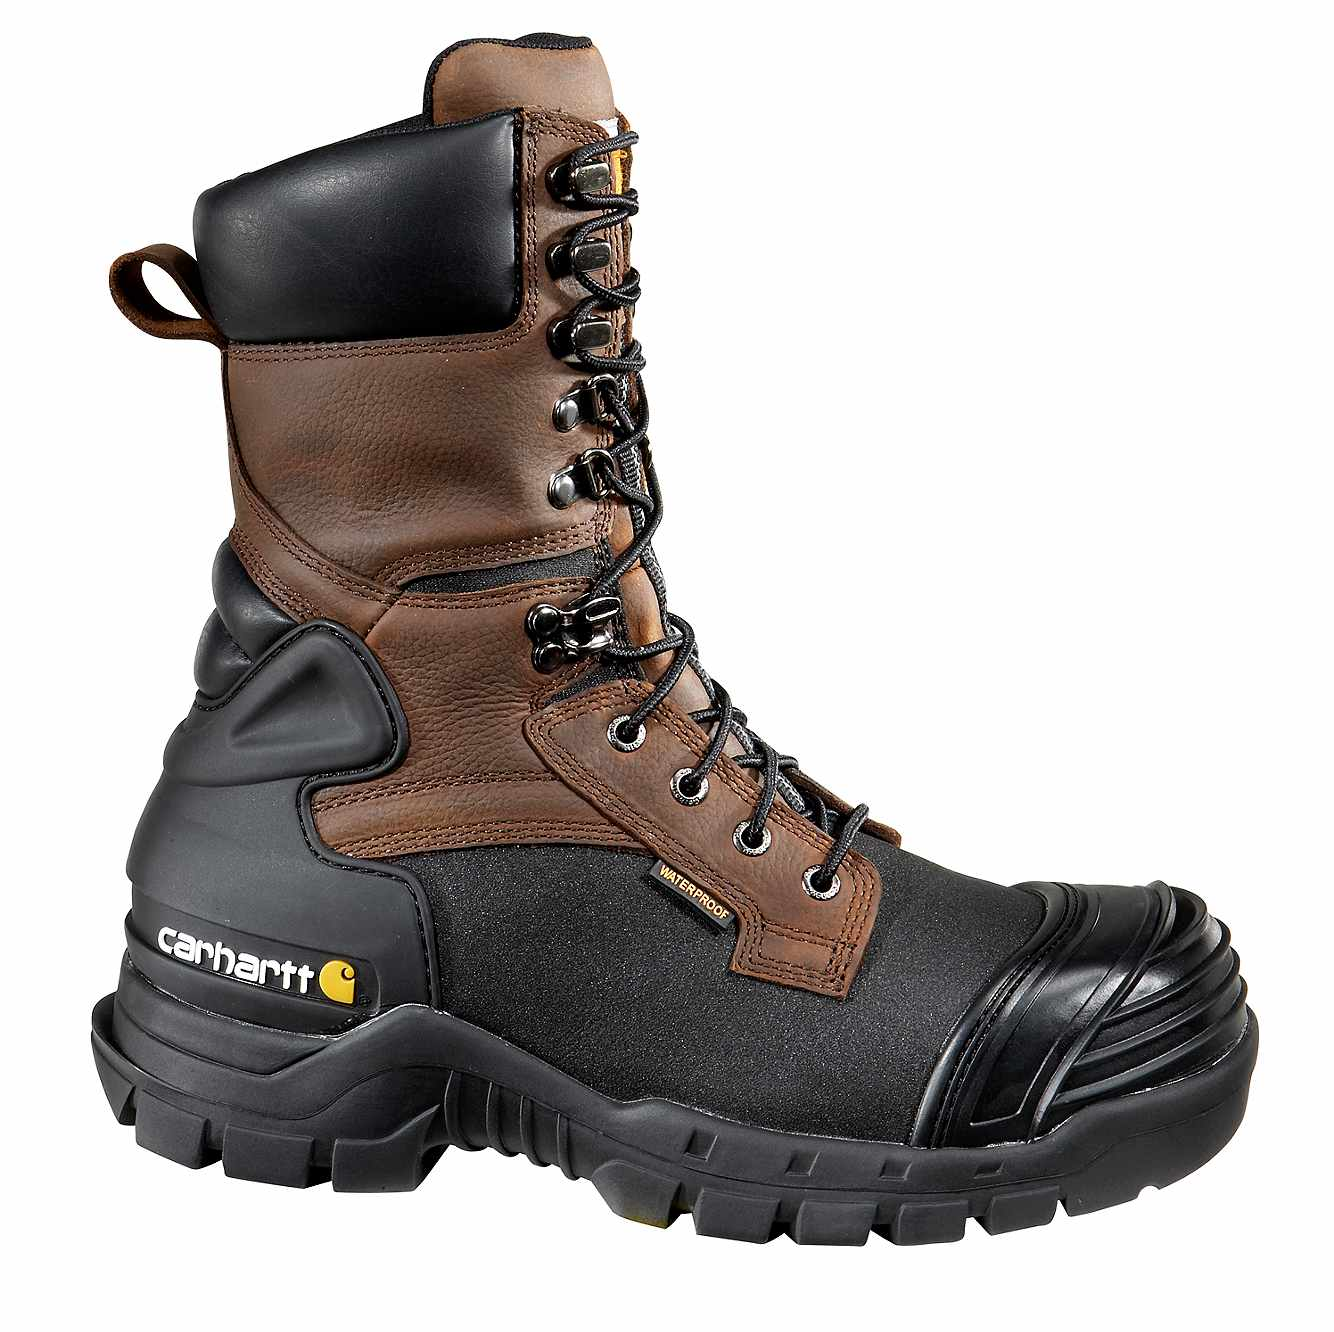 Picture of 10-Inch Insulated Composite Toe Pac Boot in Brown Oil Tanned/Black Coated